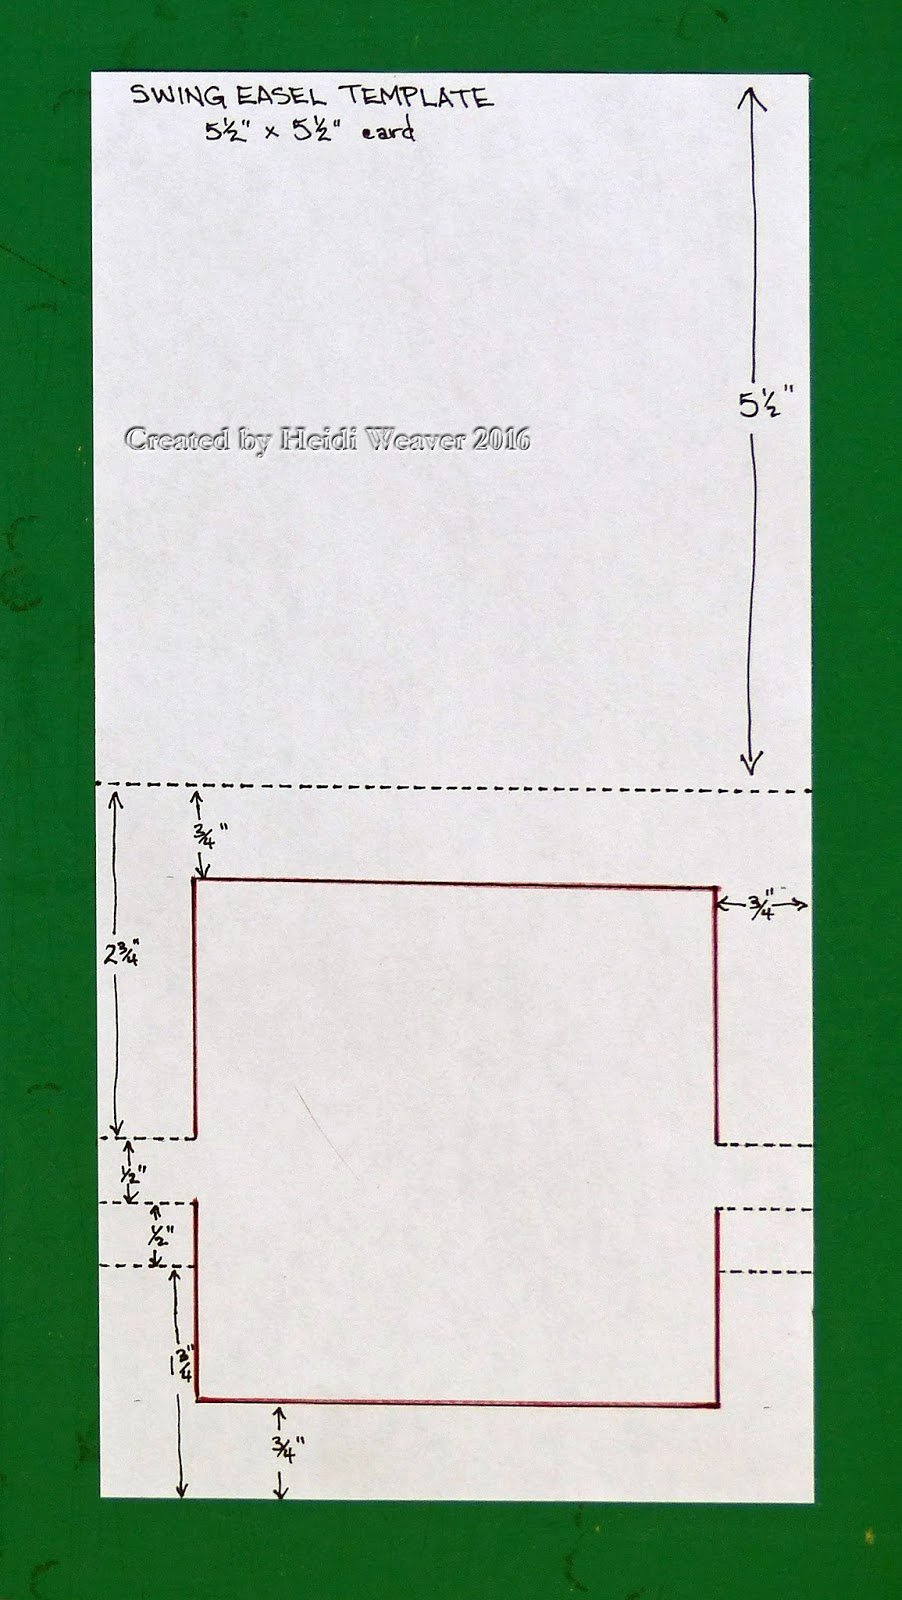 5 X 7 Postcard Template Awesome Stampin Along with Heidi the Swing Easel Fun with Sizes